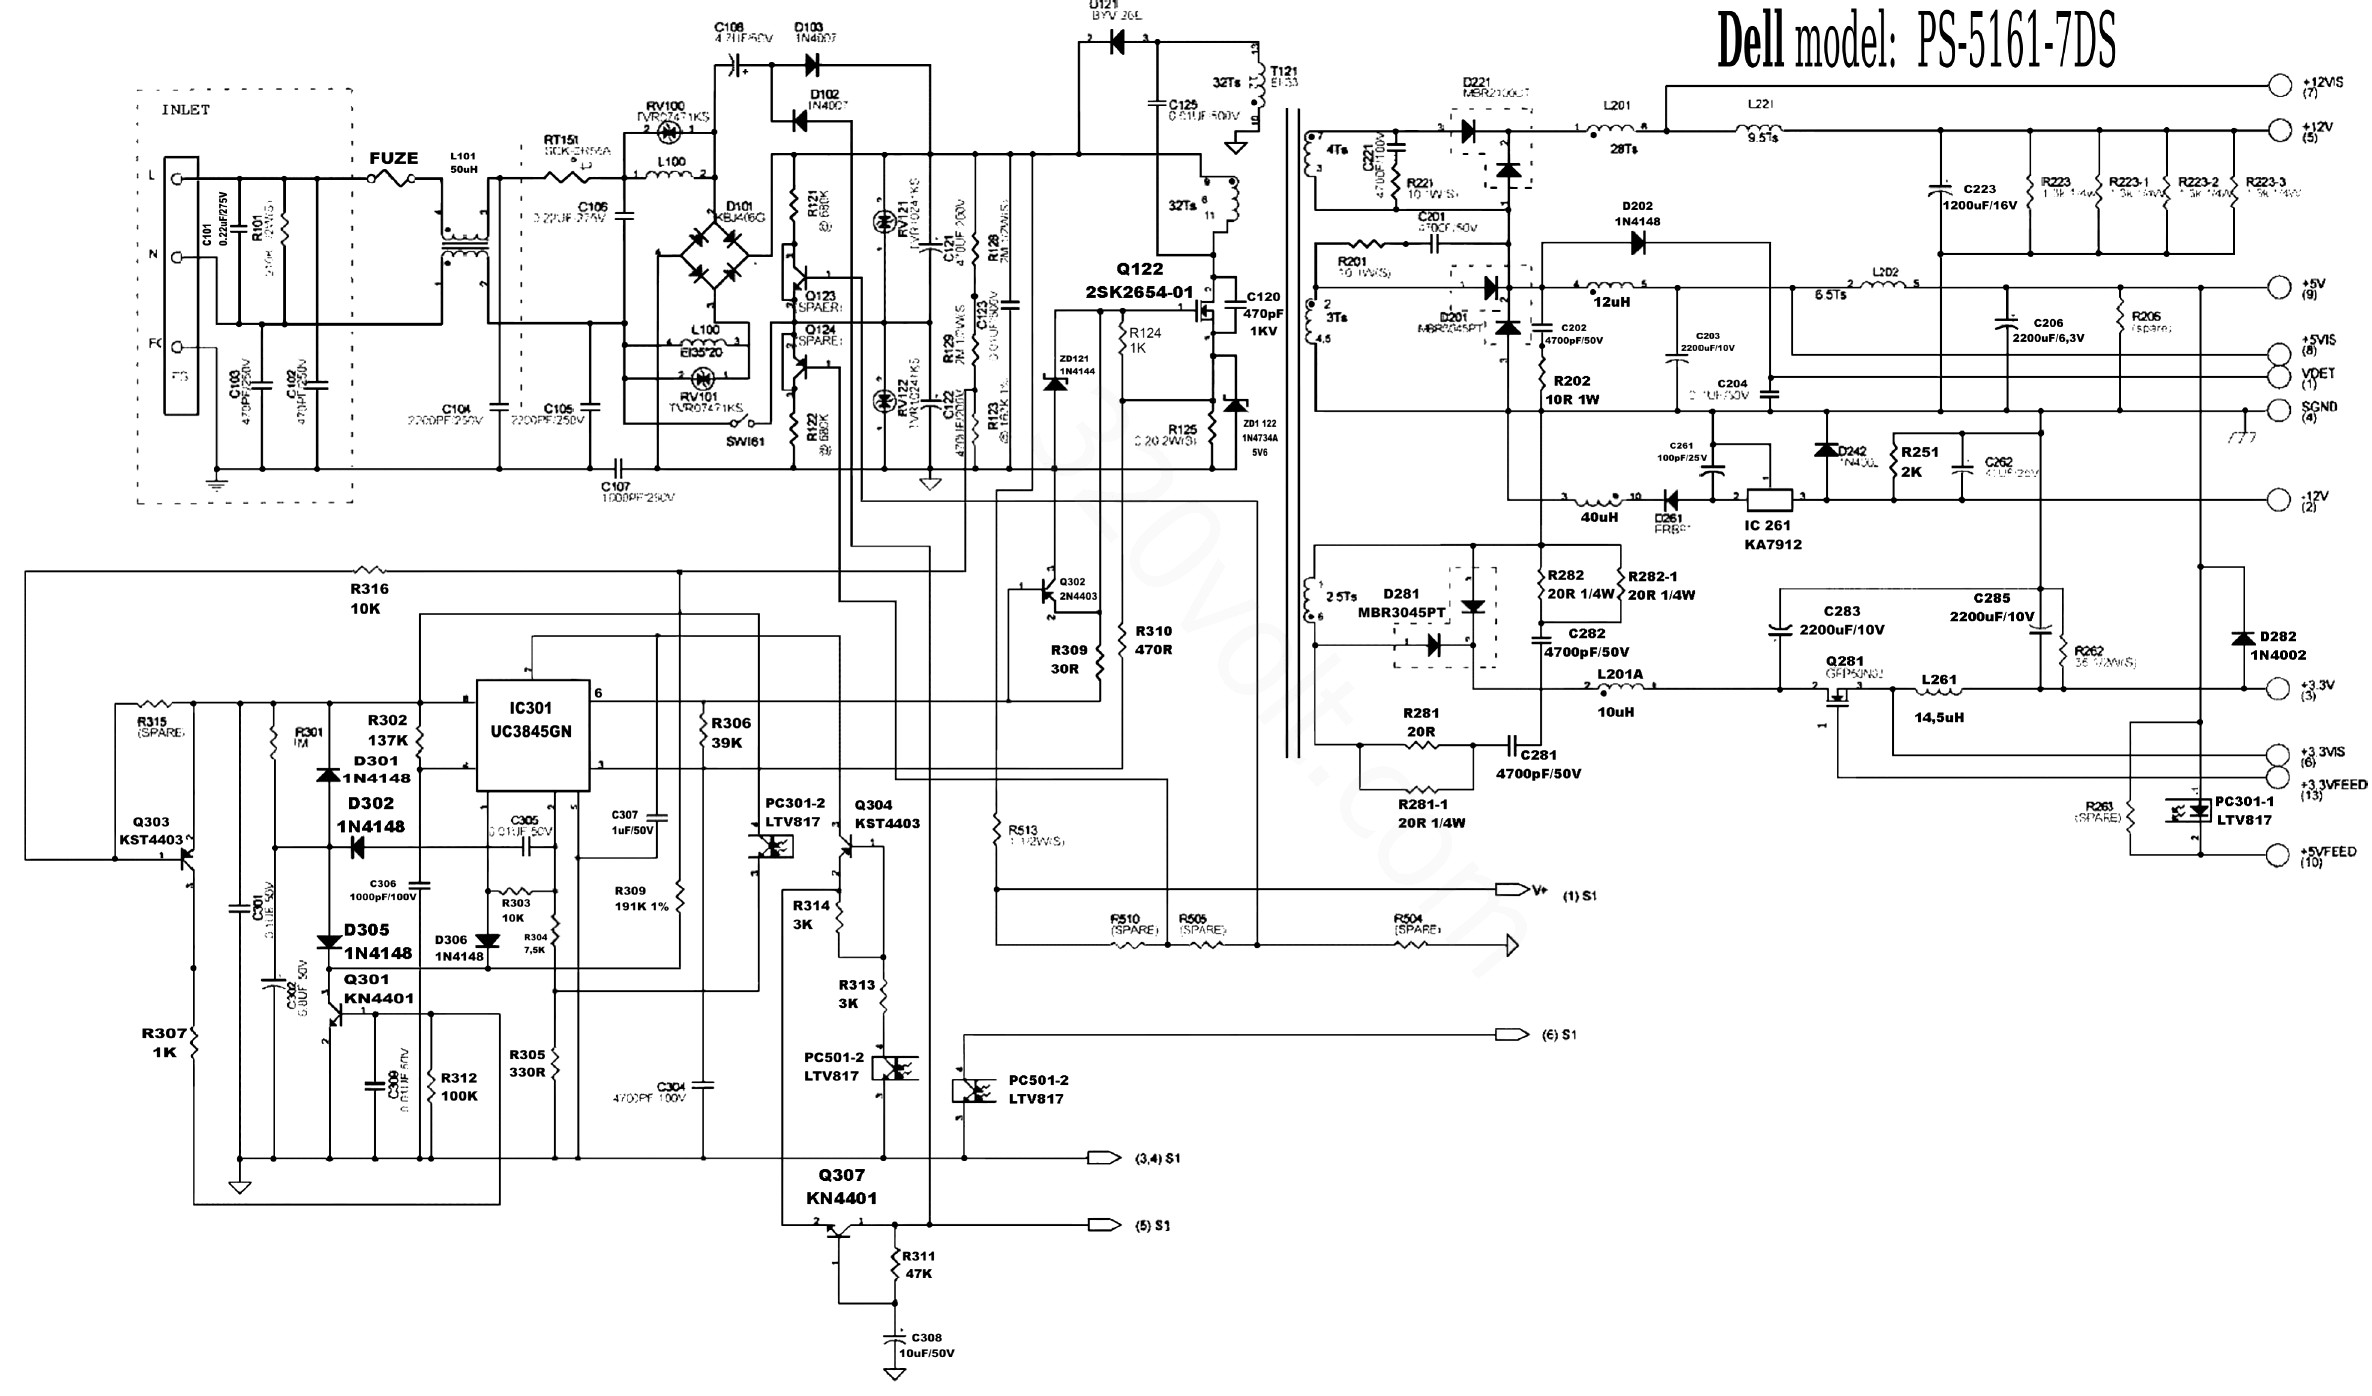 Wiring Diagram For Dell Power Supply - Wiring Diagram Library •